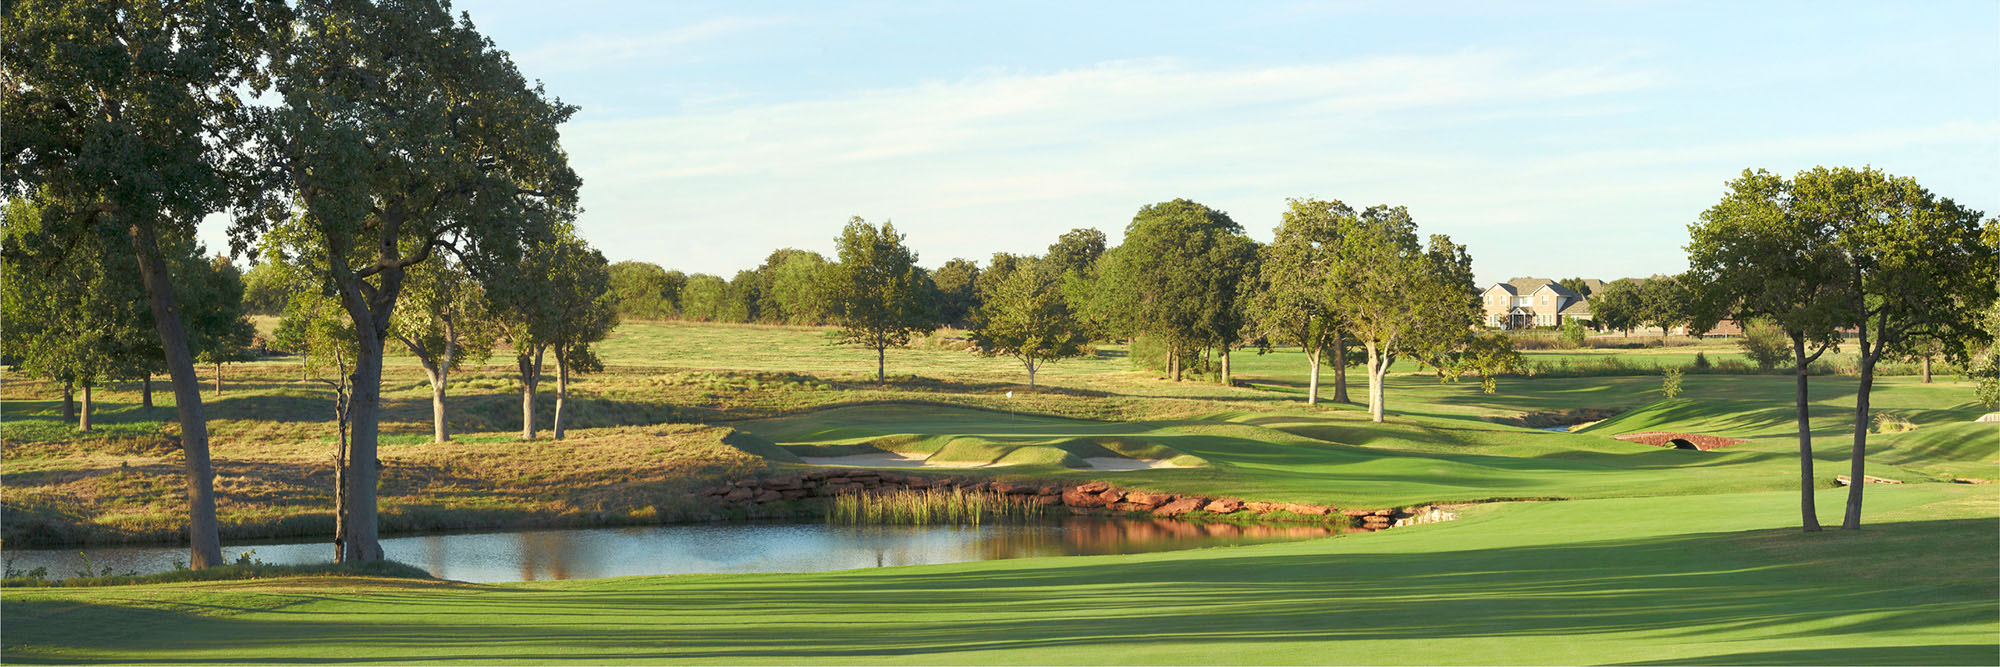 Golf Course Image - Oak Tree National No. 1